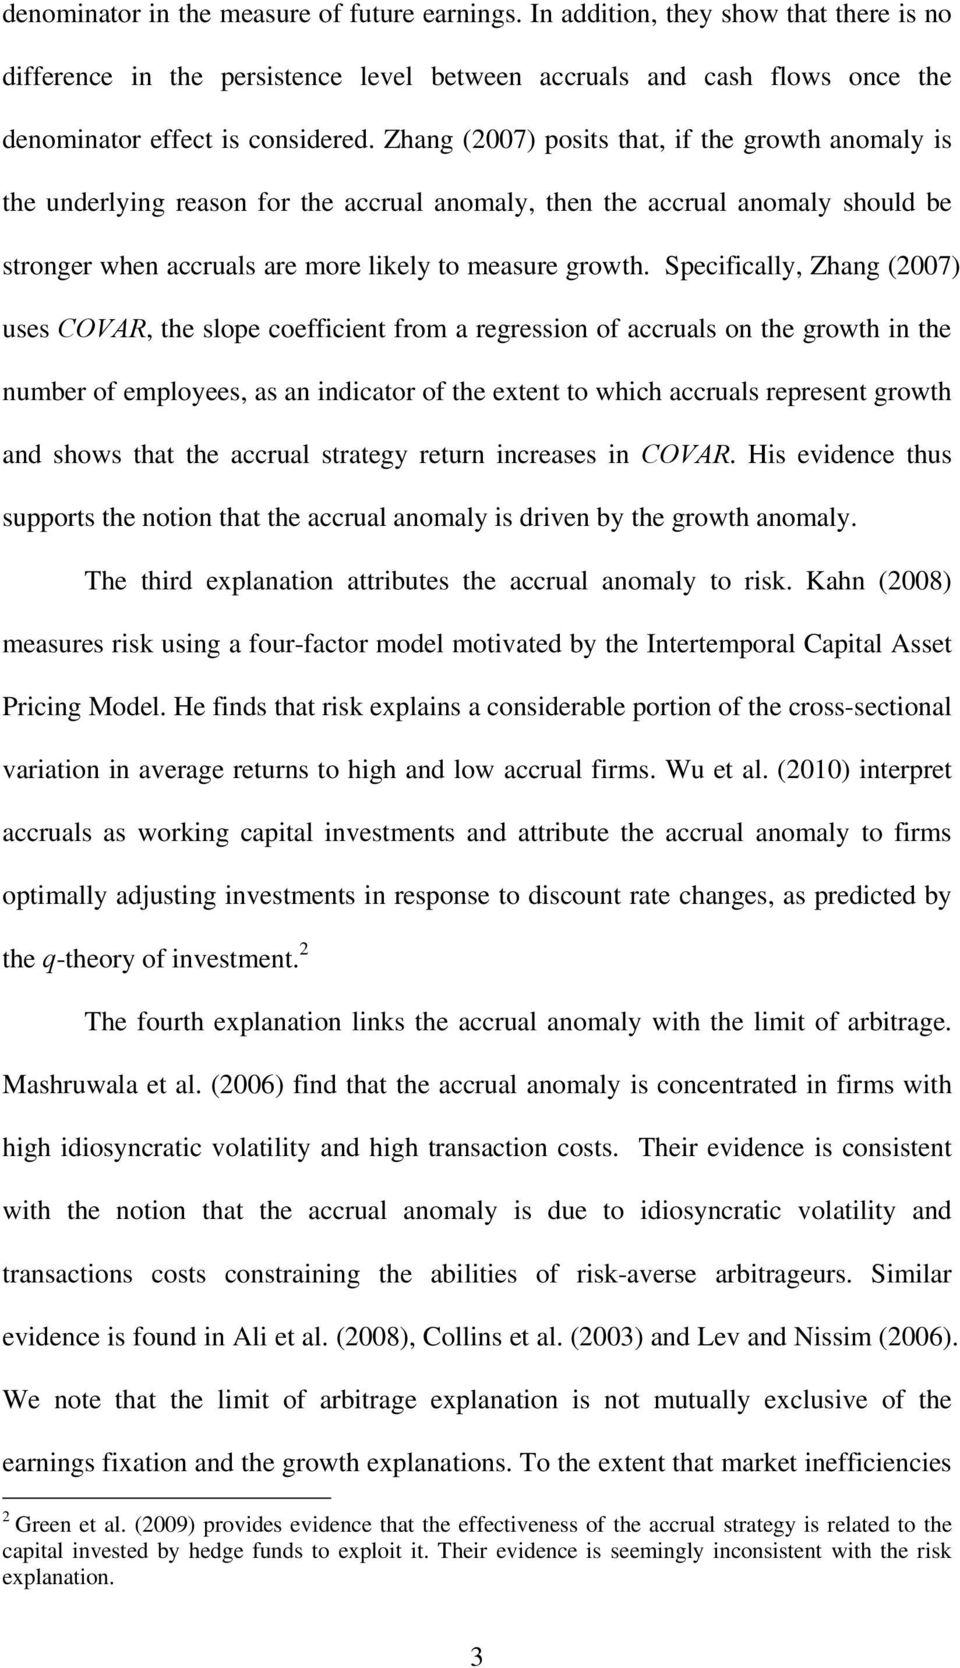 Specifically, Zhang (2007) uses COVAR, he slope coefficien from a regression of accruals on he growh in he number of employees, as an indicaor of he exen o which accruals represen growh and shows ha